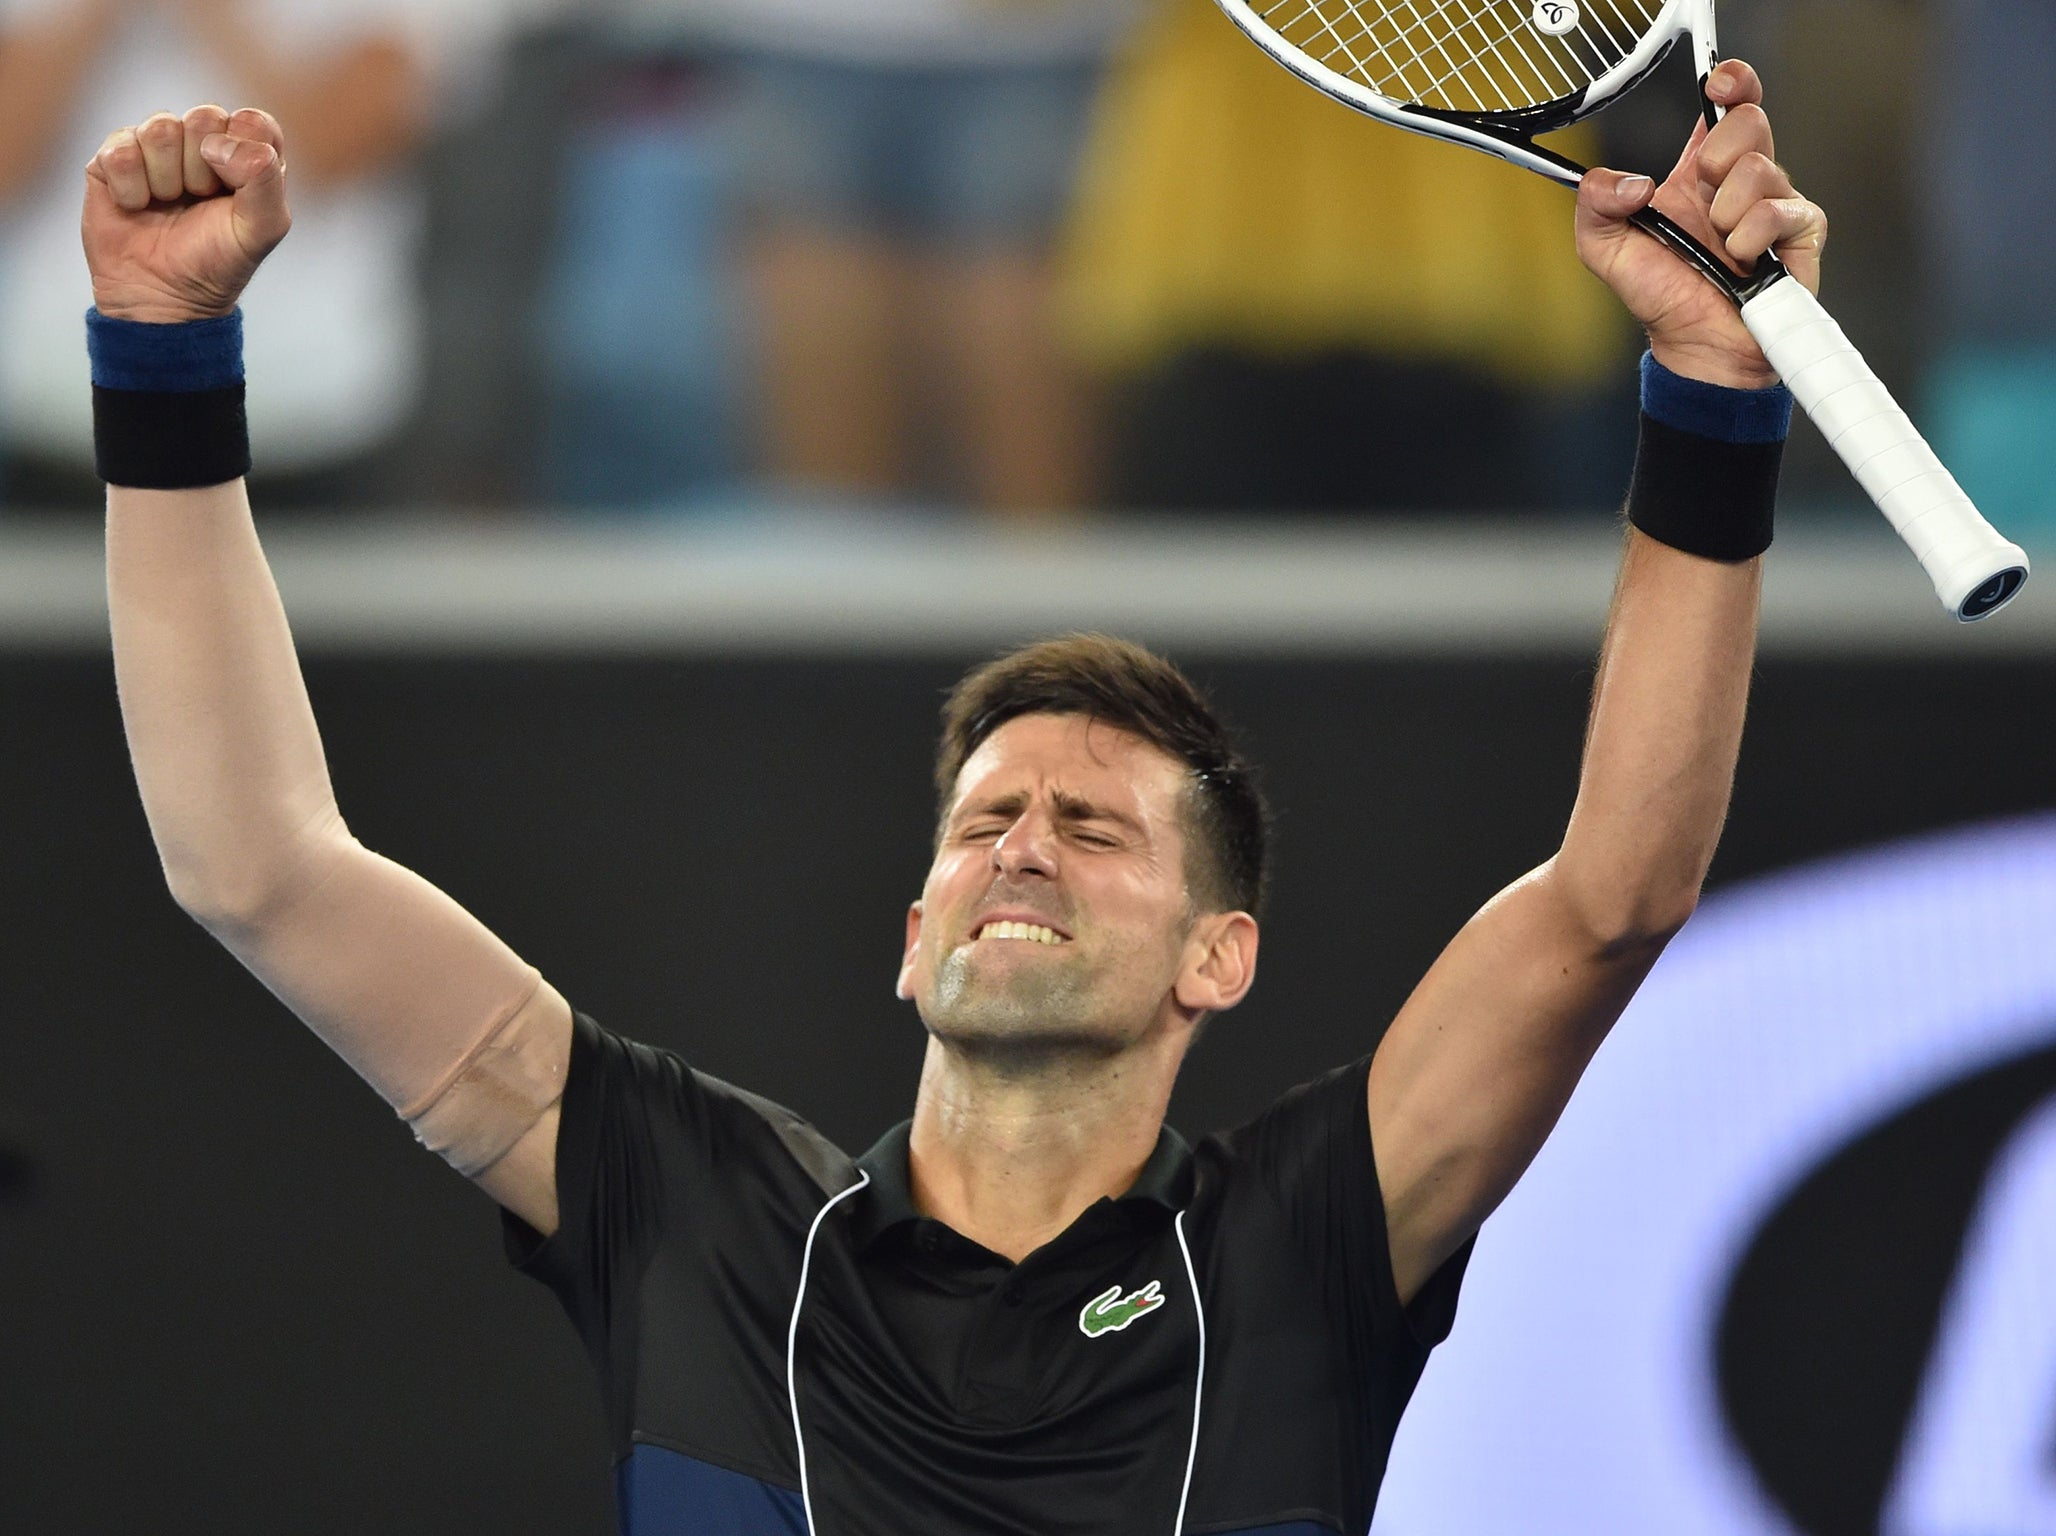 Novak Djokovic through to the last 16 of the Australian Open but fitness doubts surface again